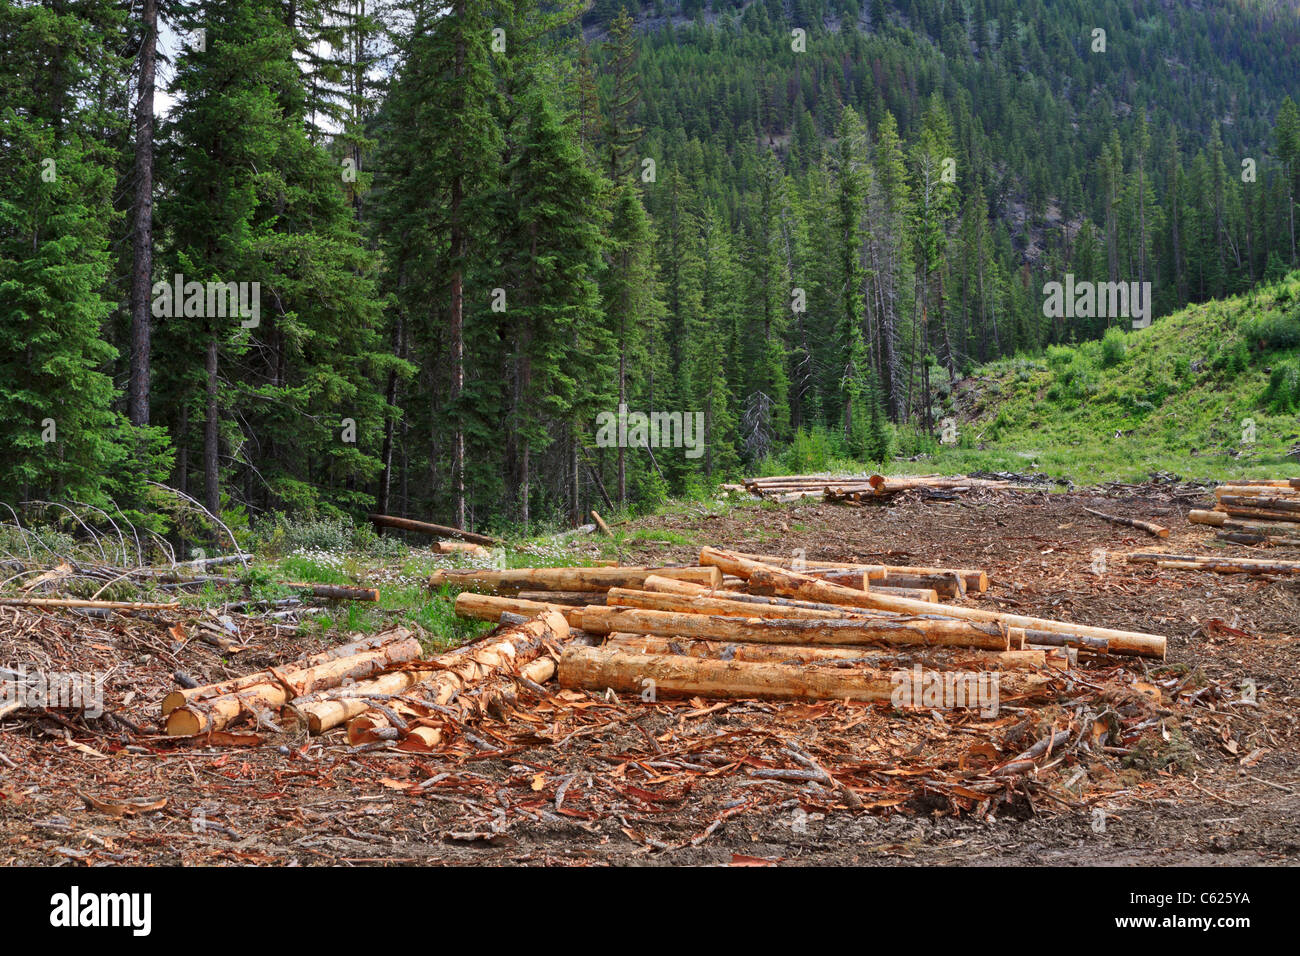 Freshly cut lumber on a hillside in British Columbia - Stock Image